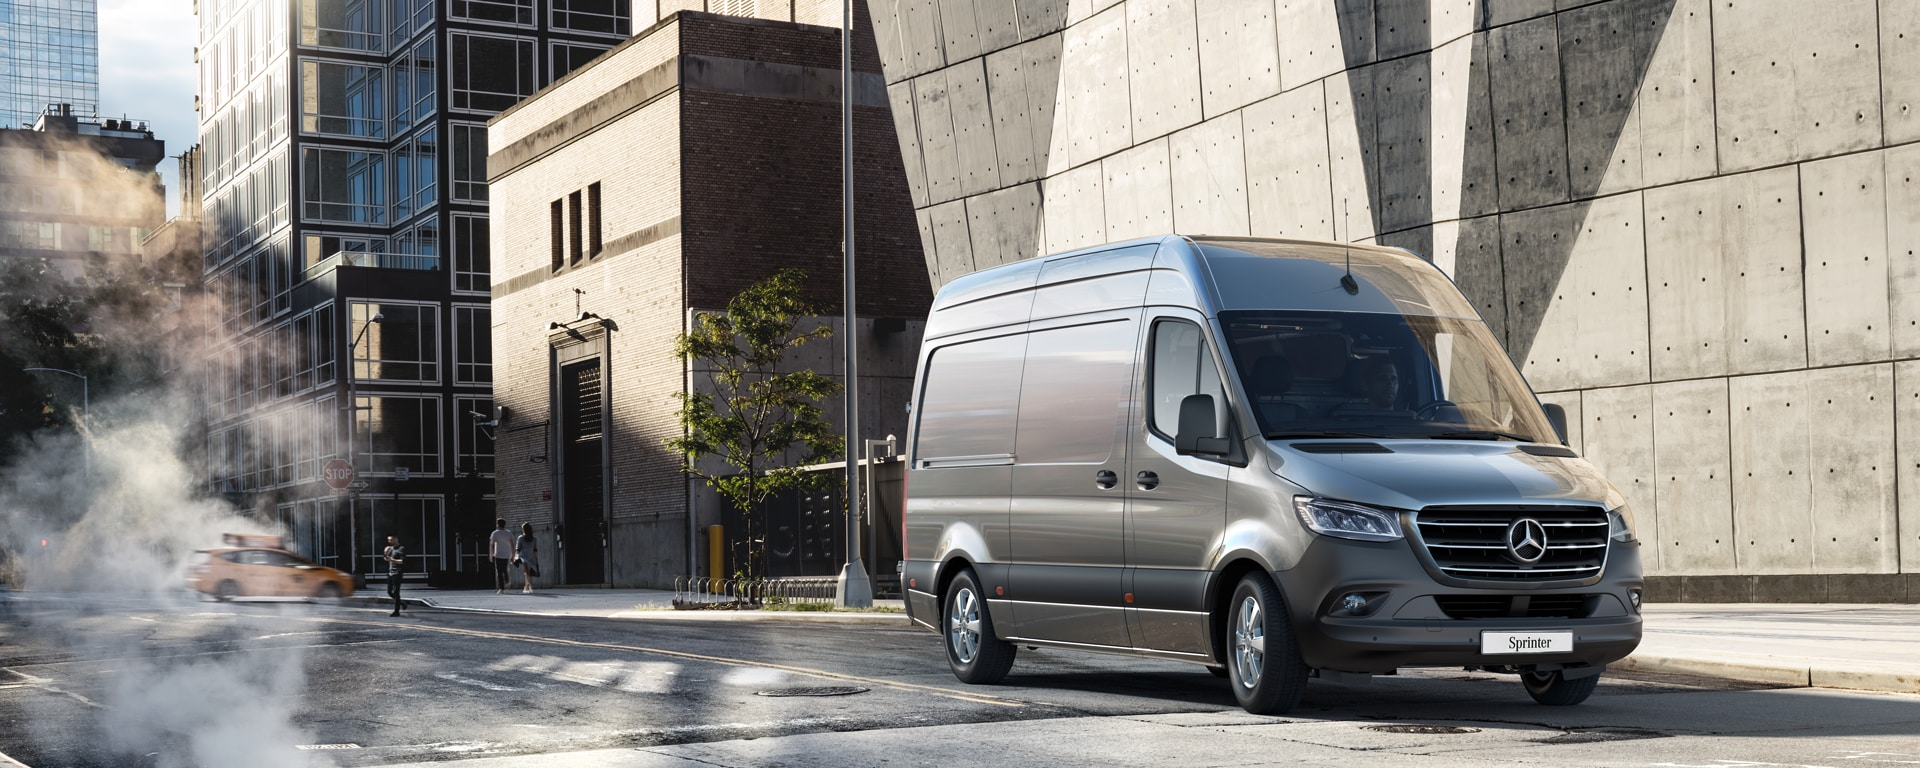 Mercedes-Benz Sprinter Fourgon gris.